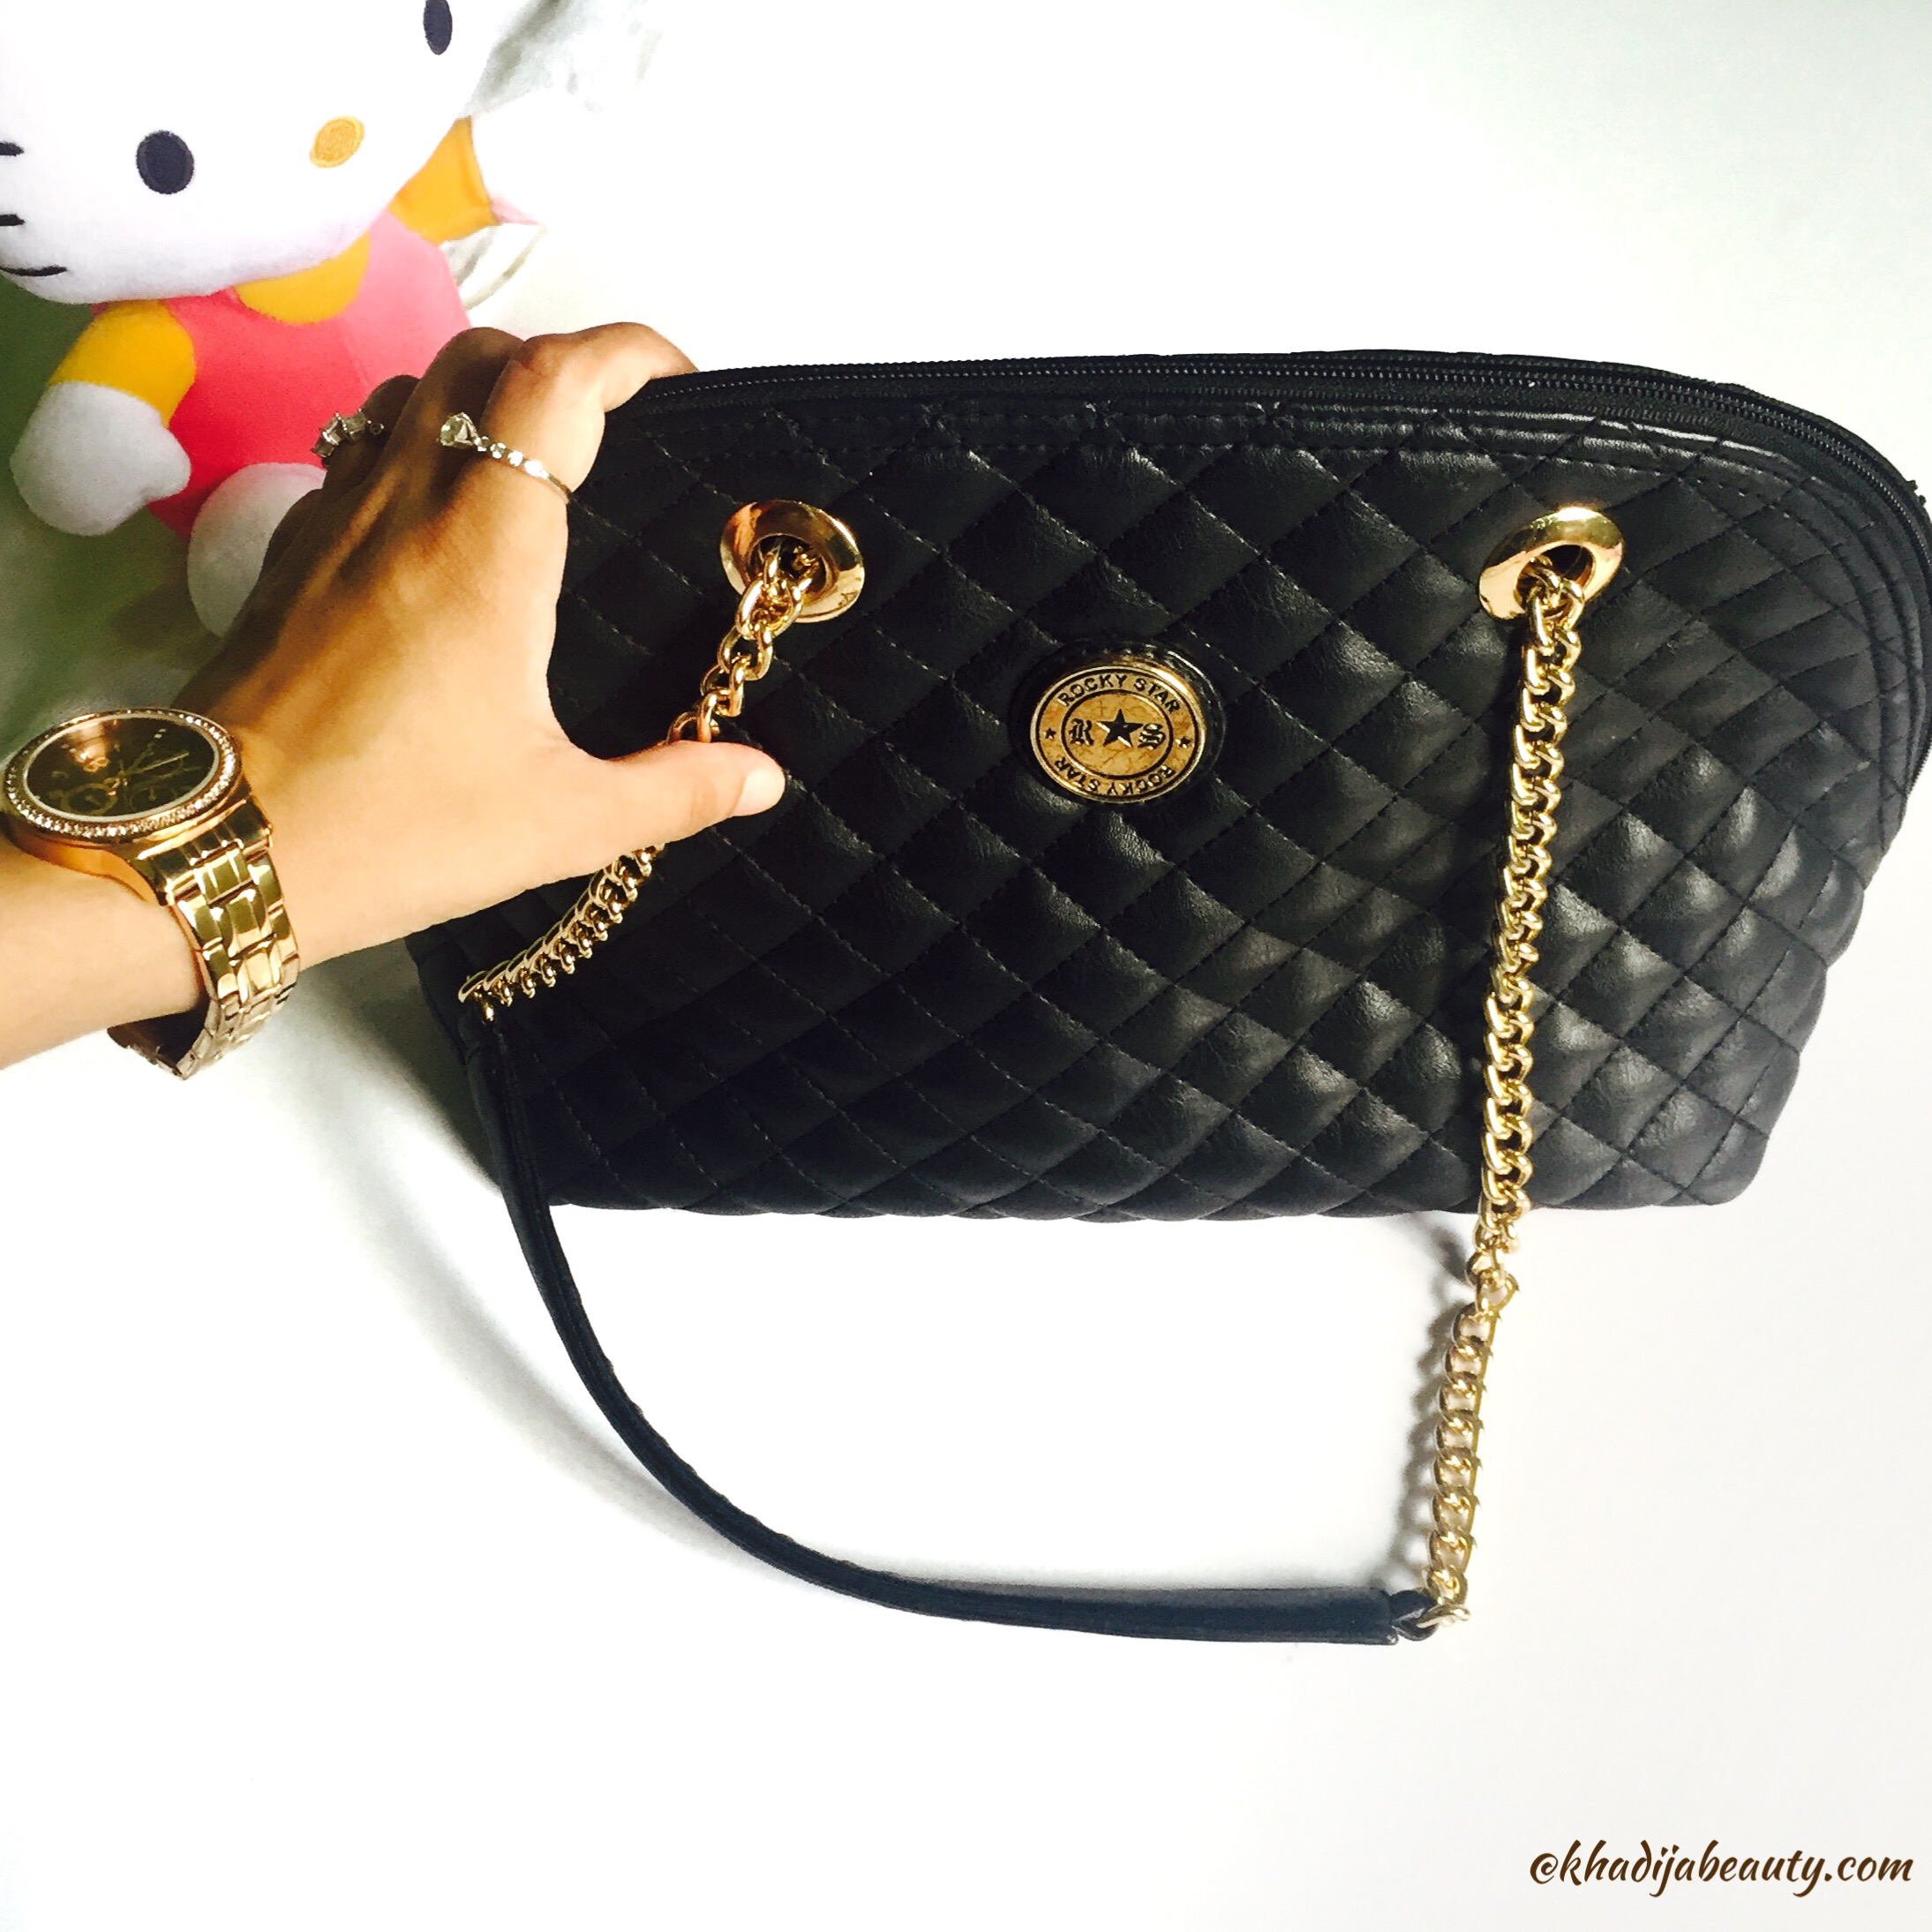 Rocky star handbag, chic and classy black handbag, khadija beauty